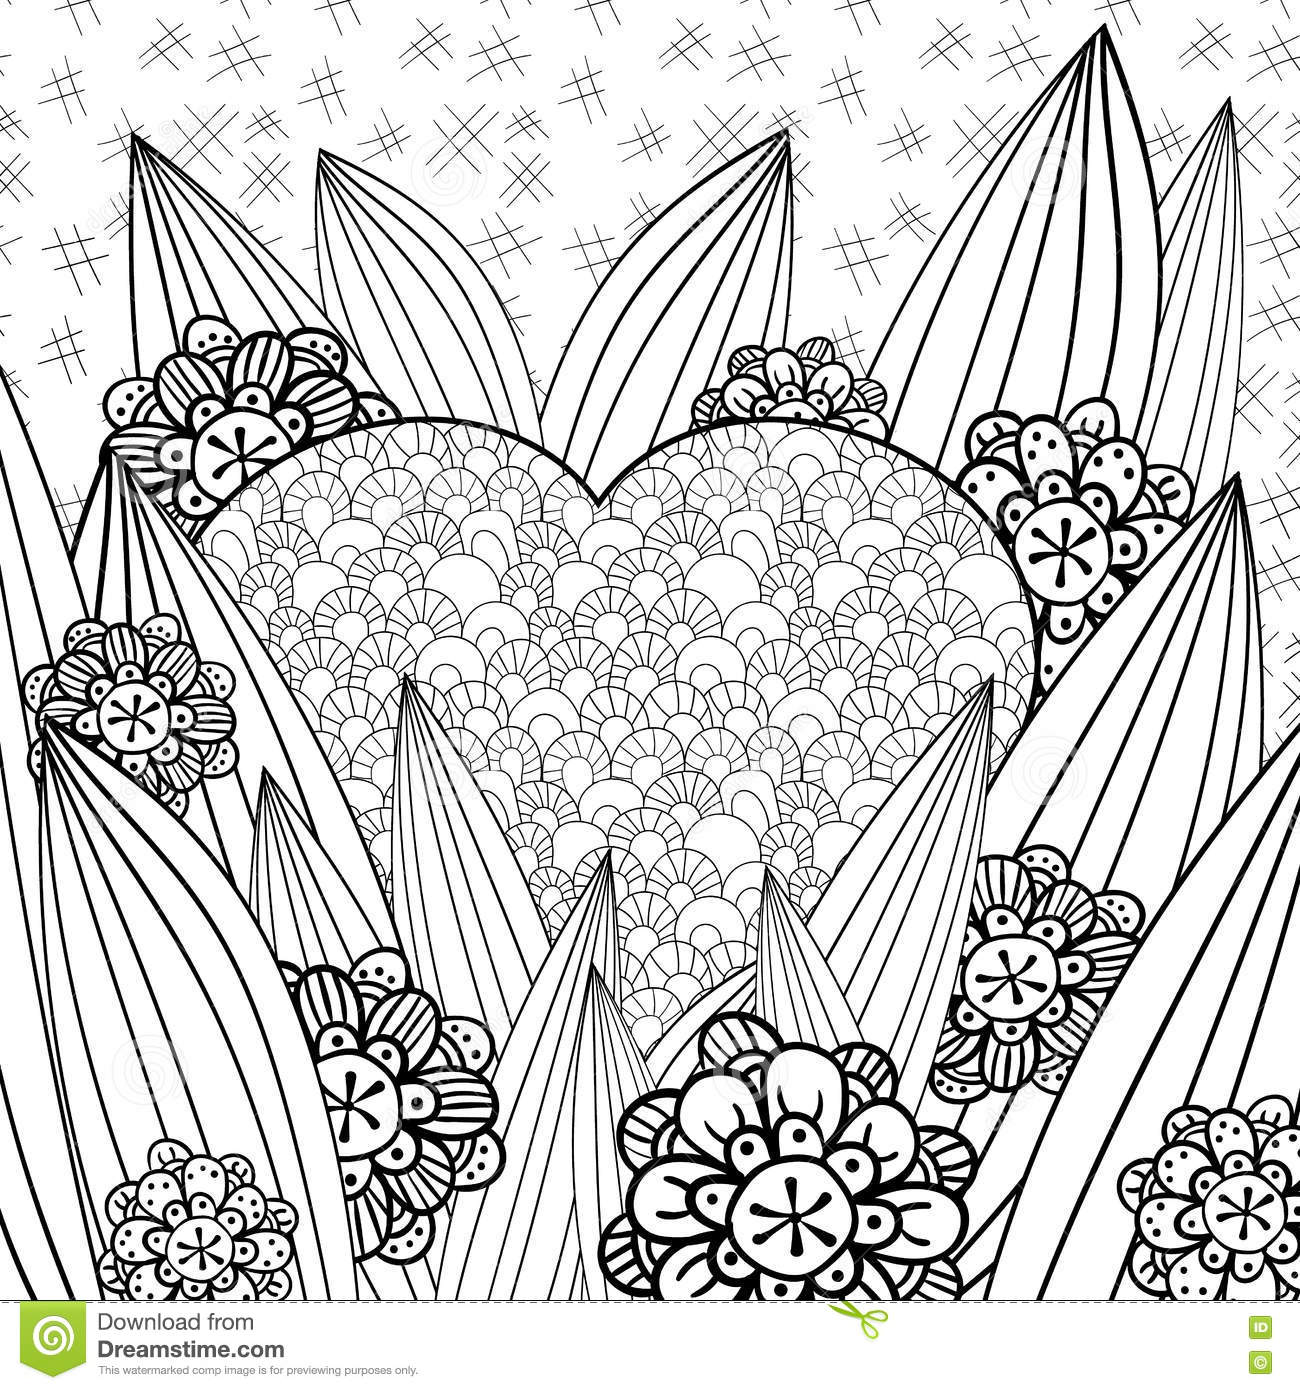 whimsical garden coloring page stock vector image 71697515